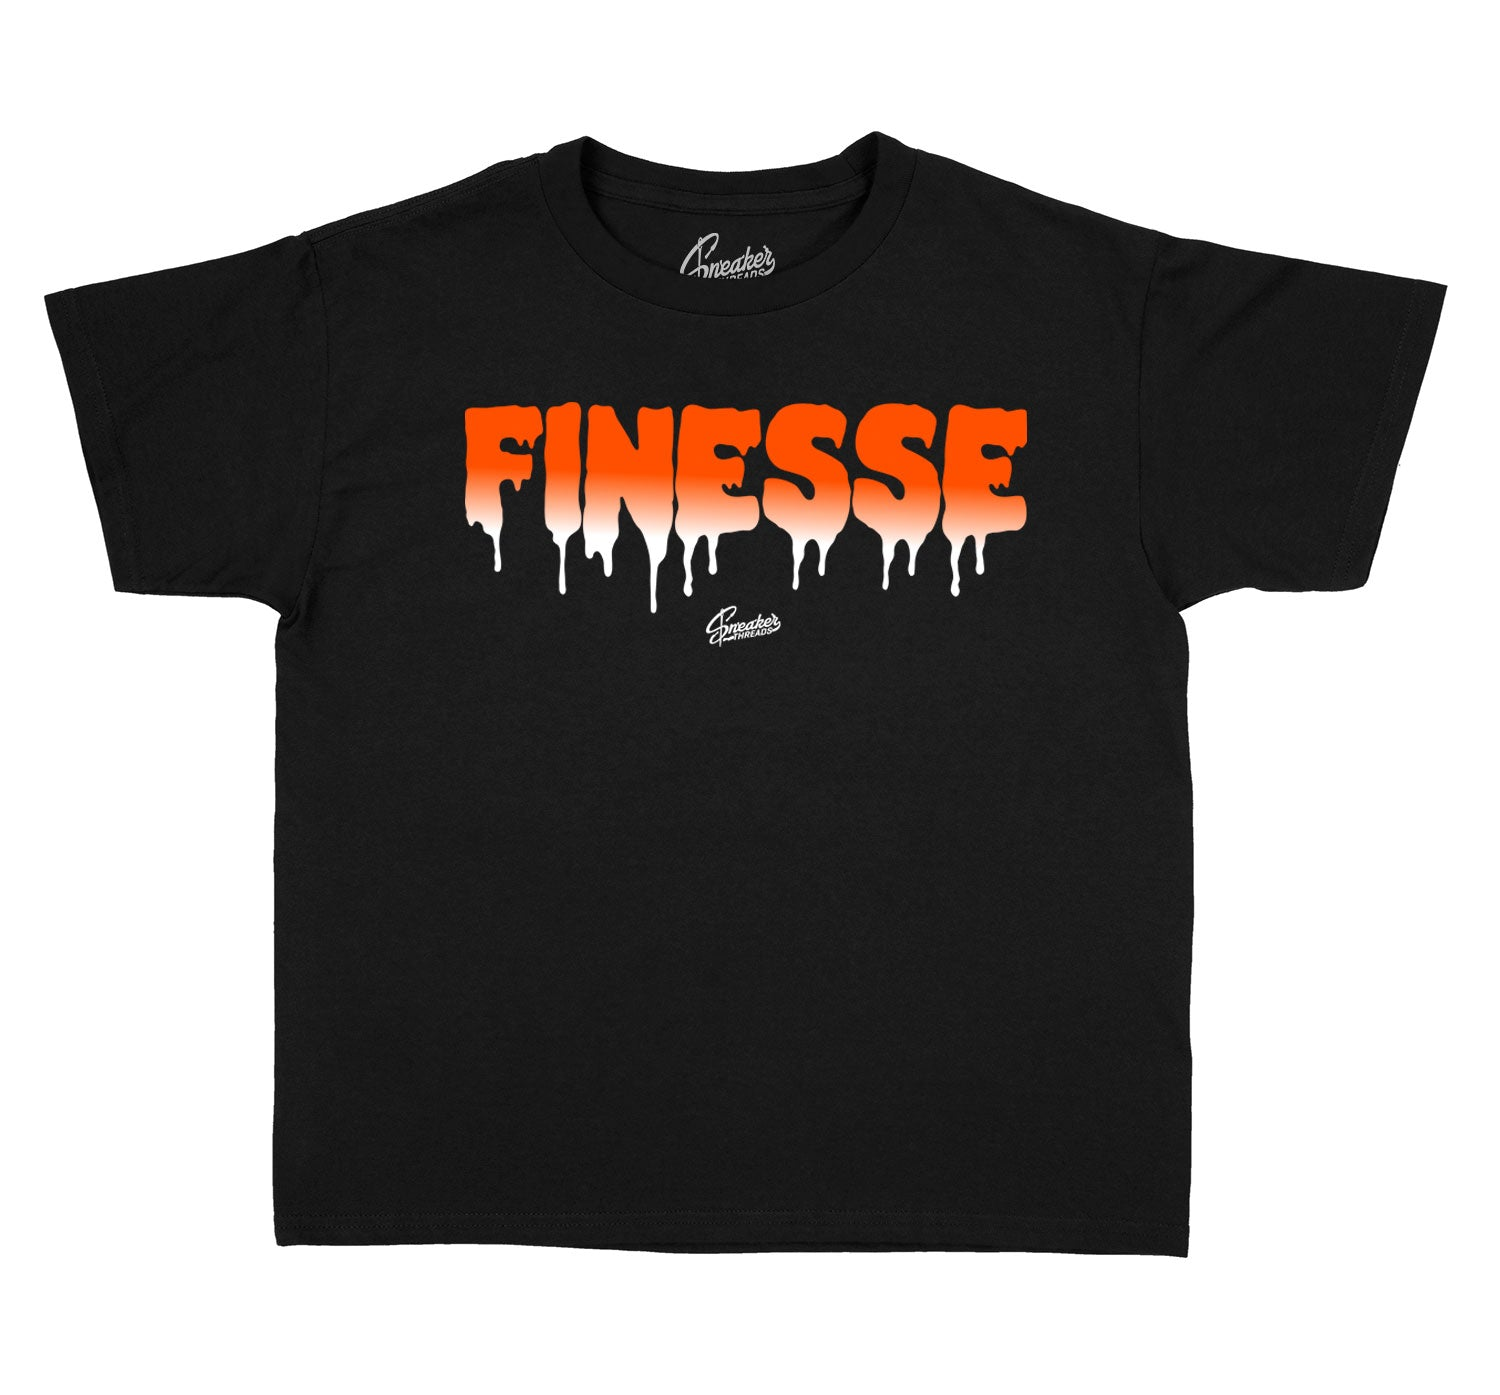 Kids Starfish Shirt - Finesse - Black